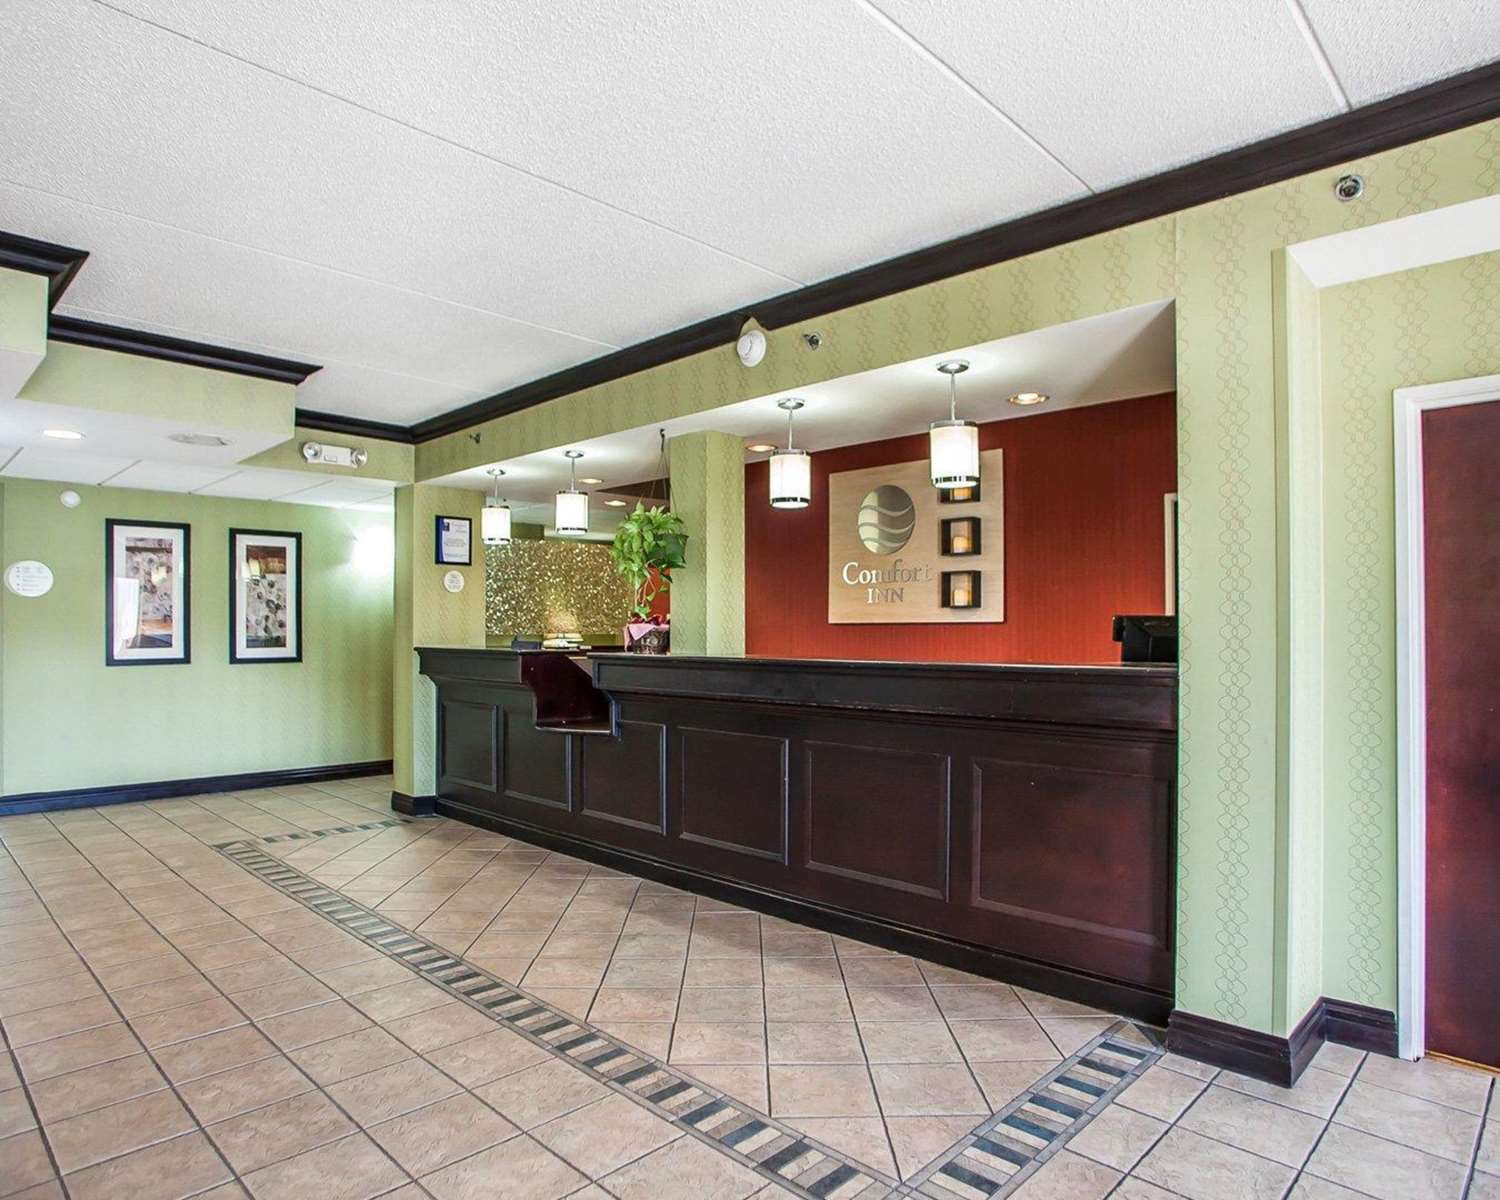 Lobby - Comfort Inn West Allentown